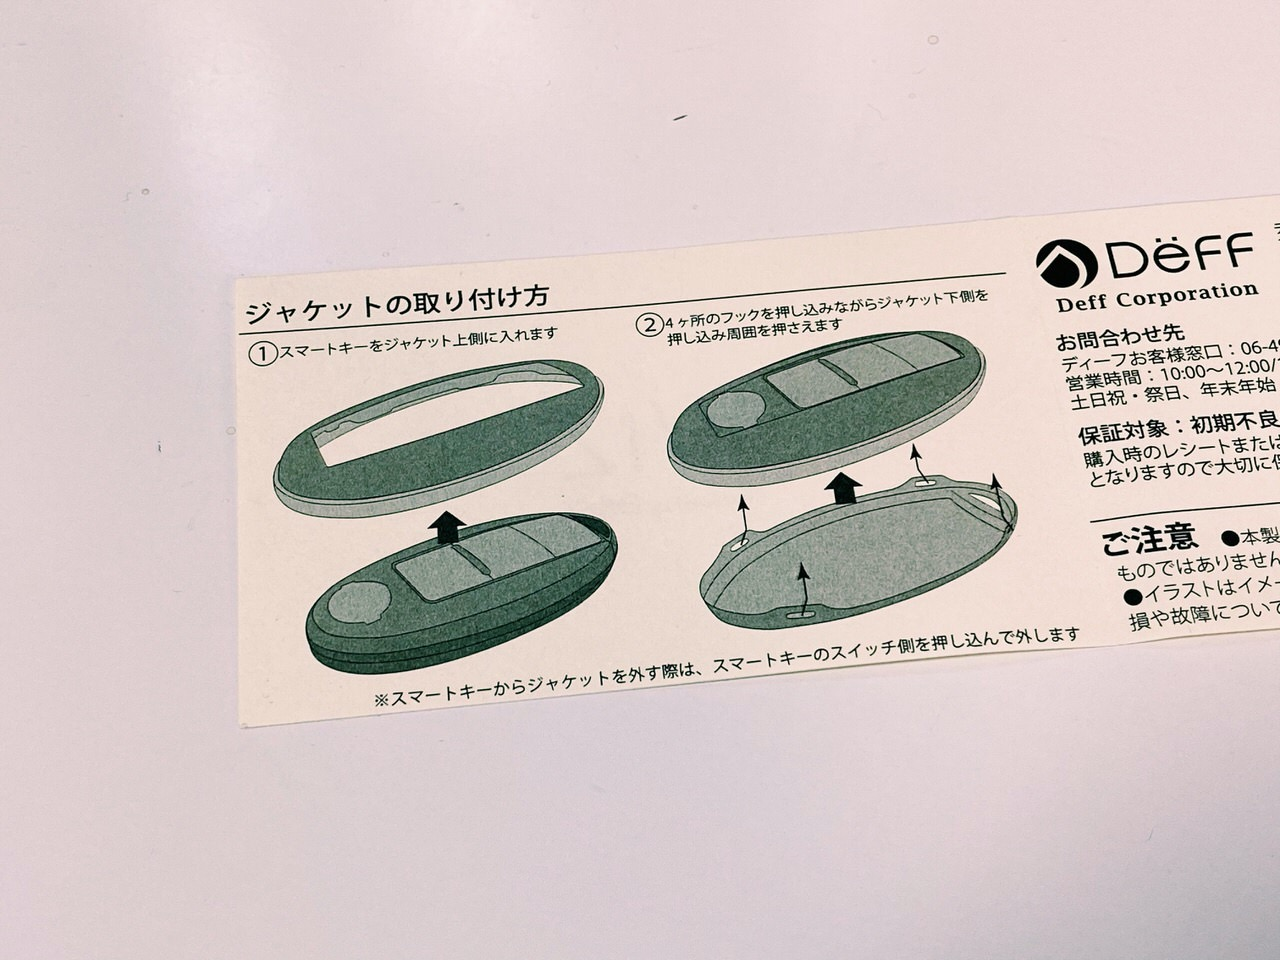 【Deff】日産車用スマートキーケース「WIZ JACKET for SMART KEY」5